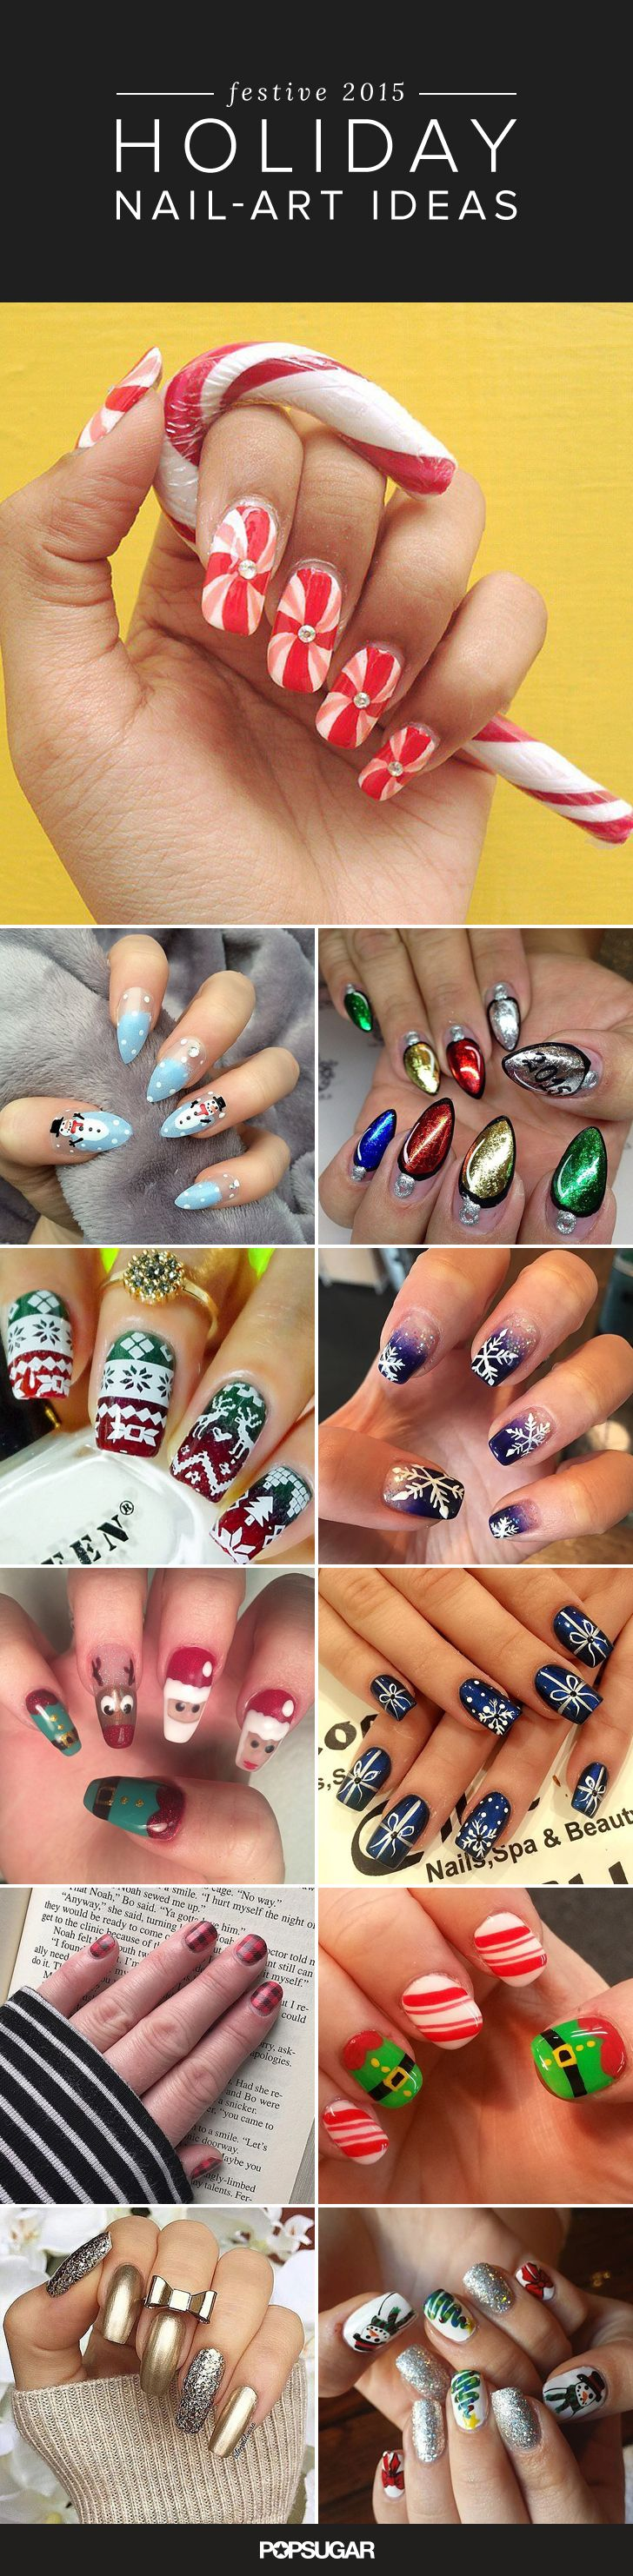 Get into the holiday spirit with these festive digit designs!